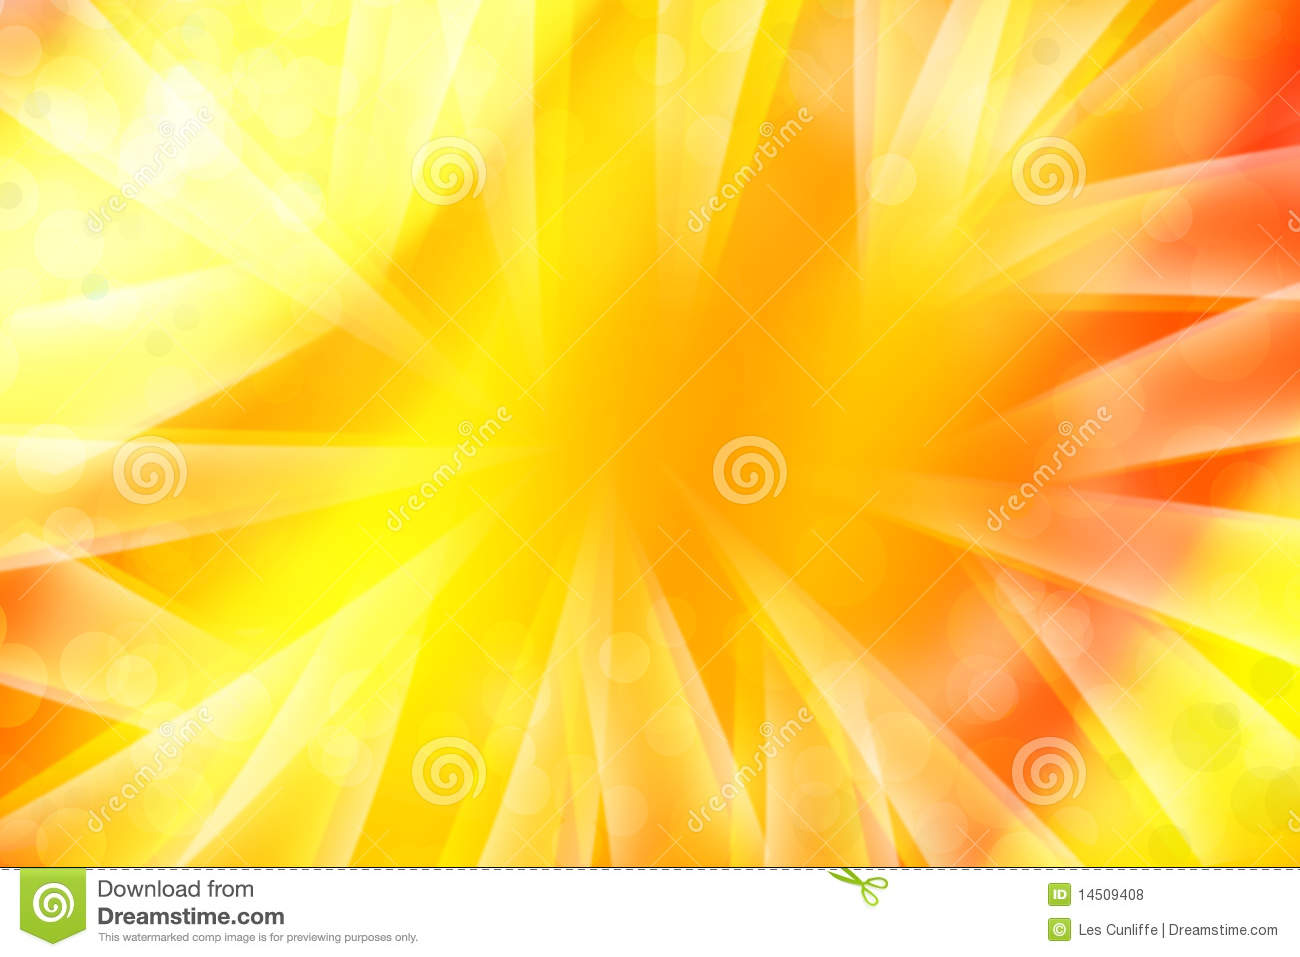 Bright Background Royalty Free Stock Photos - Image: 14509408